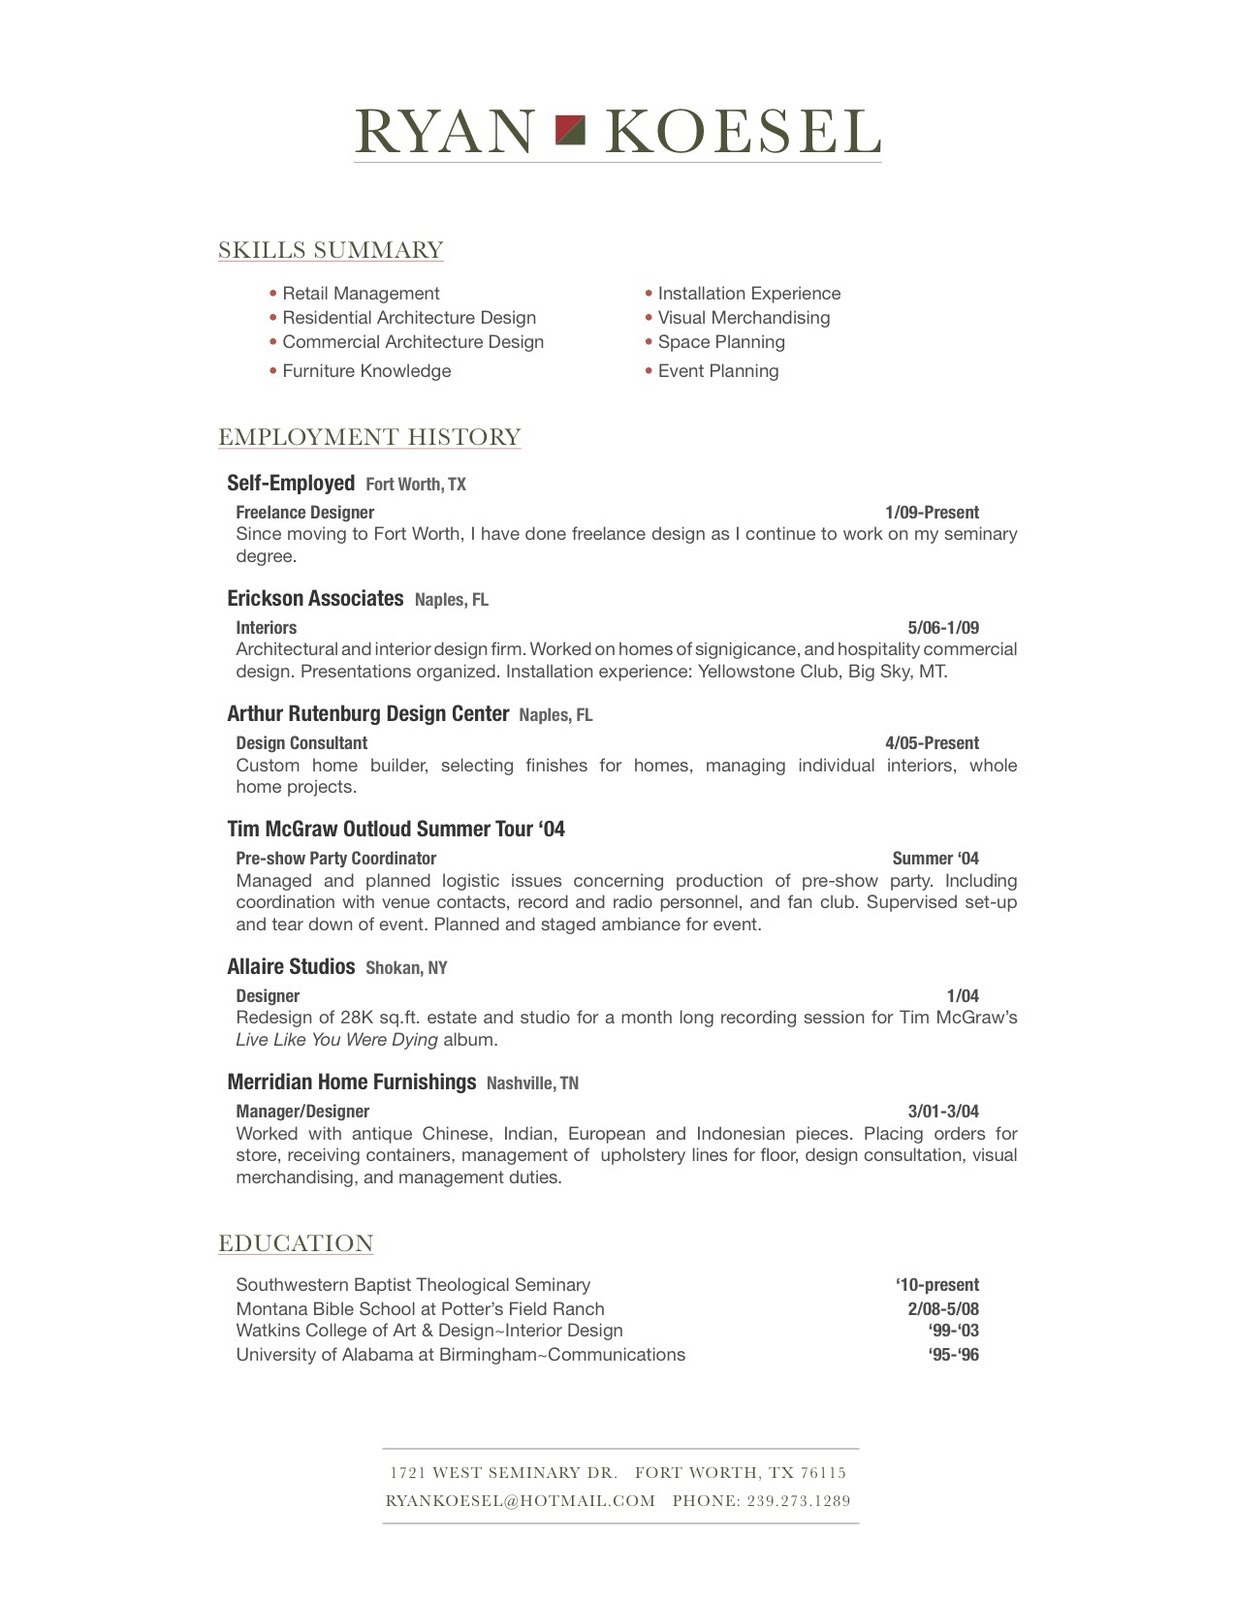 Ministry Resume submited images